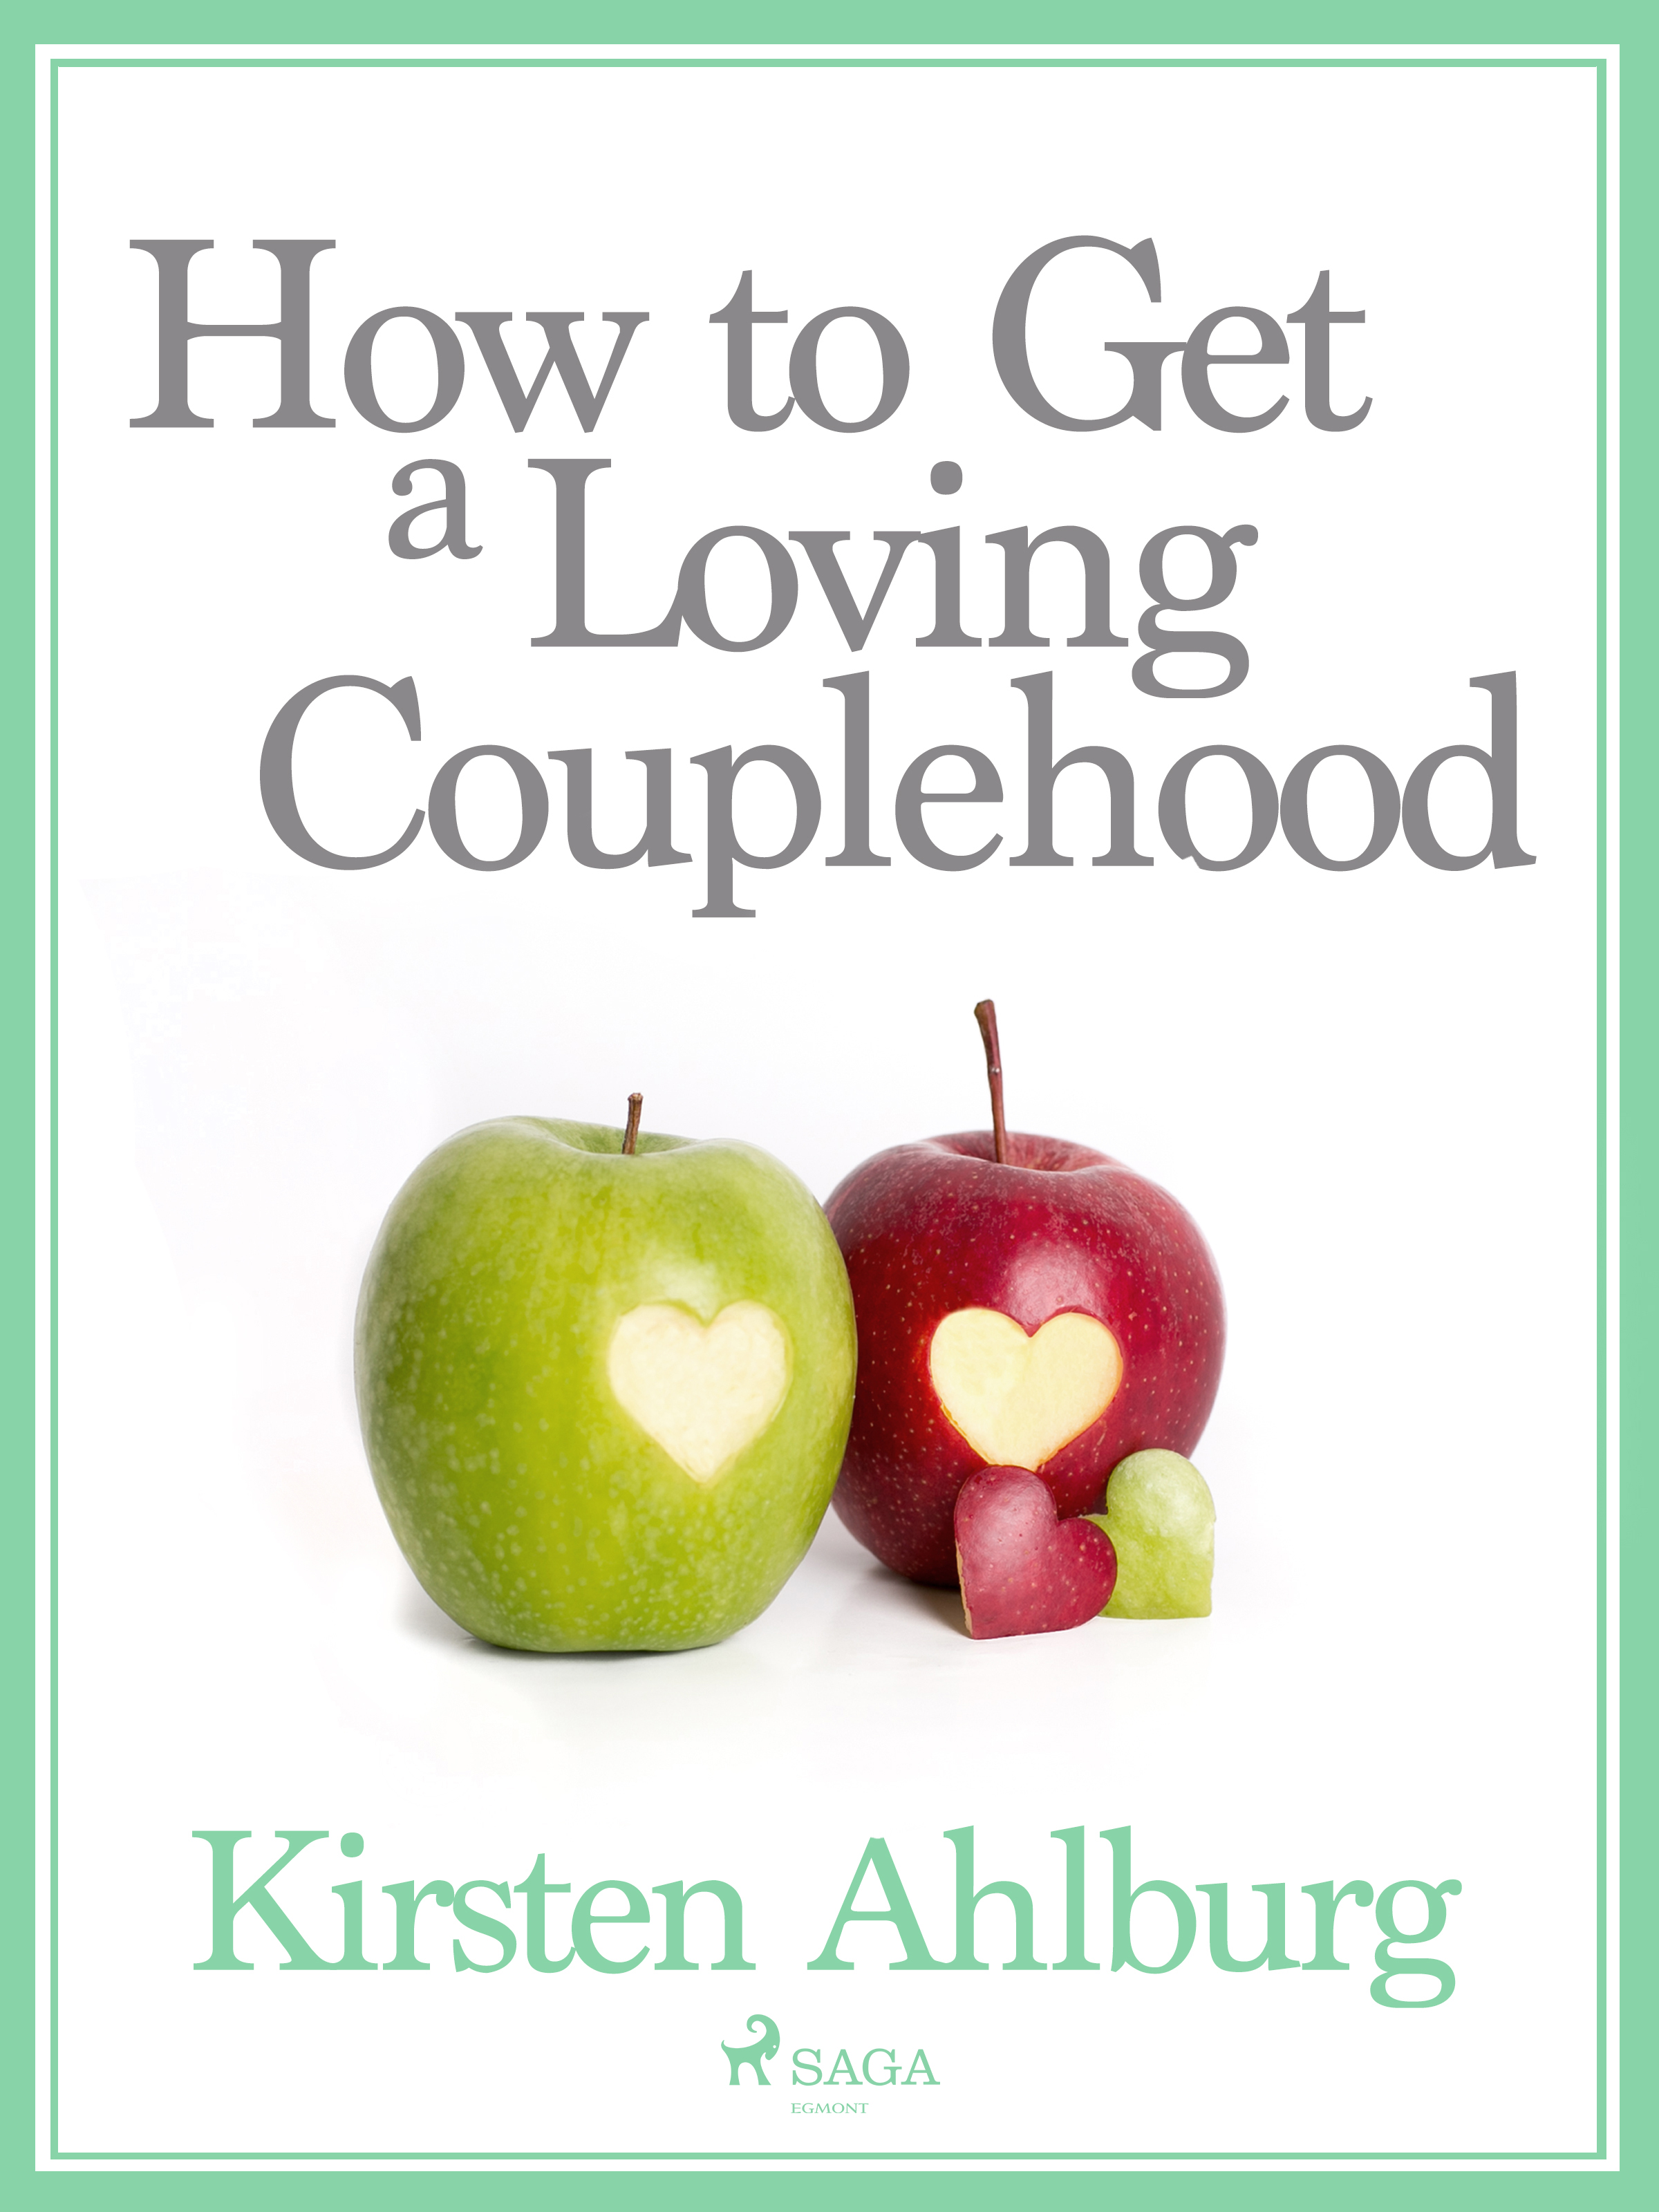 How to Get a Loving Couplehood - E-lydbog